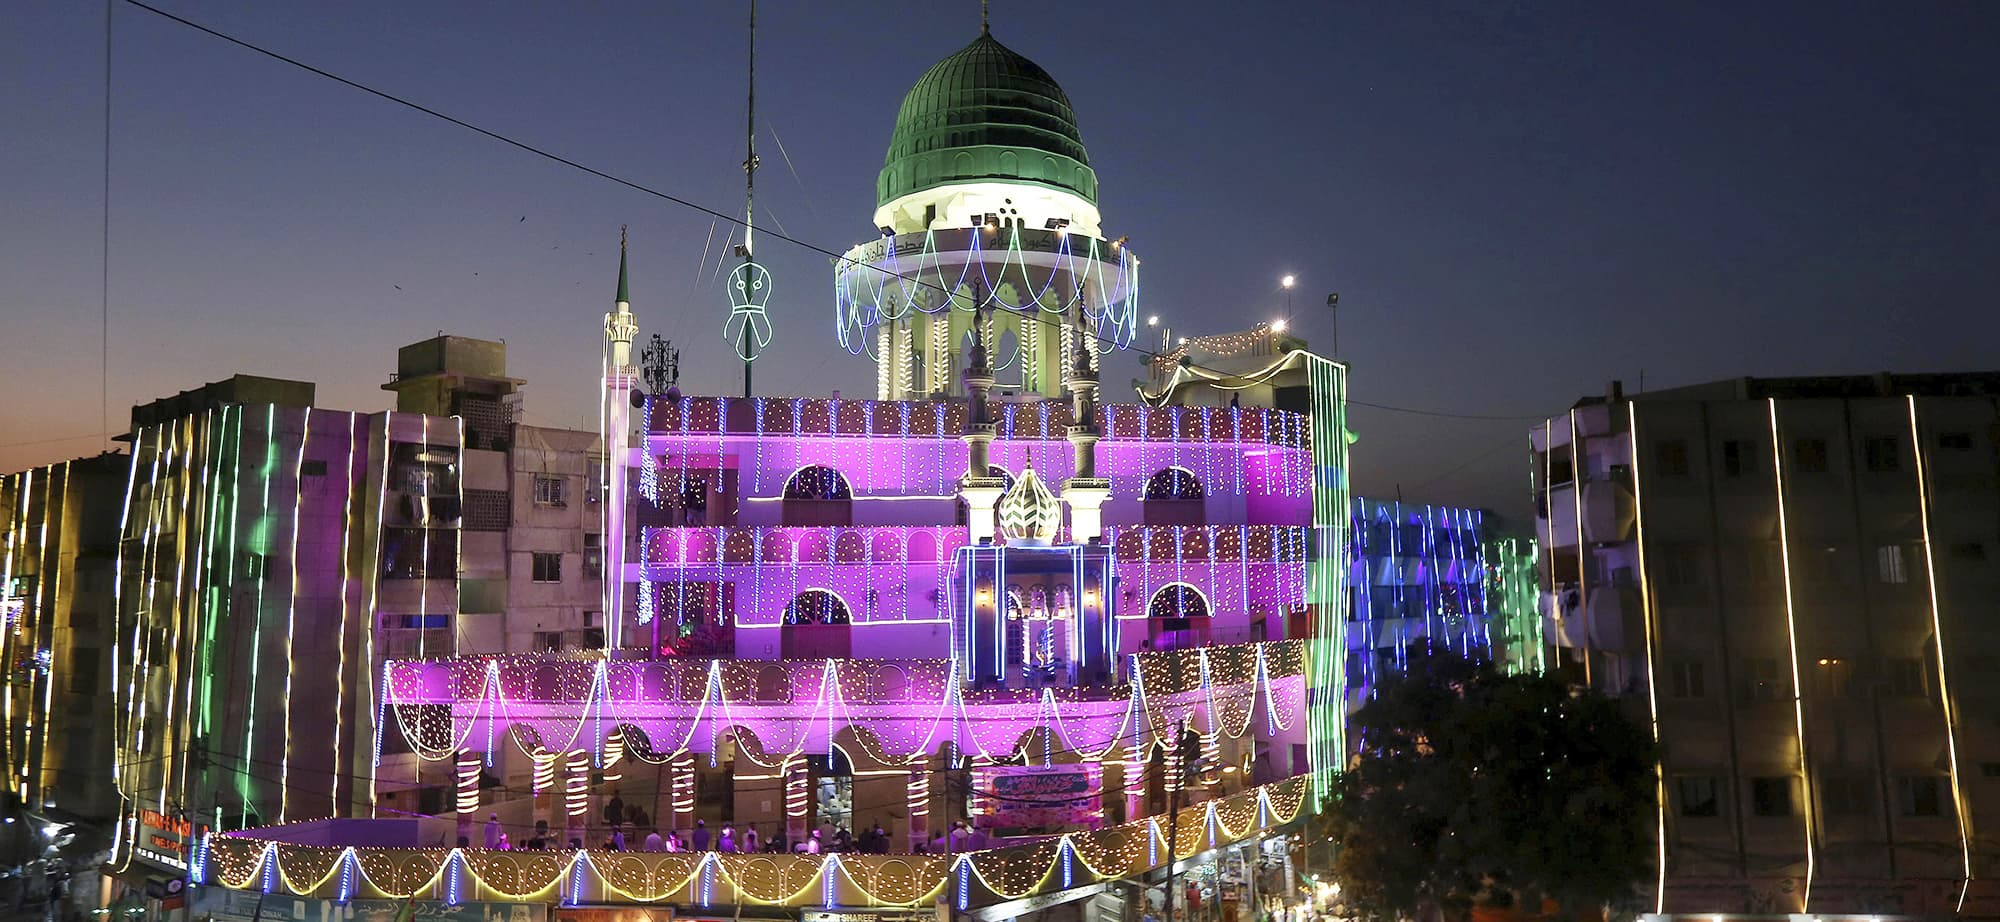 A mosque is decorated with lights for the Mawlid al-Nabi holiday celebrating the birthday of Islam's prophet, Muhammad, born in the year 570, in Karachi, Pakistan, Saturday, Nov. 9, 2019. Thousands of Pakistani Muslims will take part on Sunday in religious processions, ceremonies and distributing free meals among the poor. (AP Photo/Fareed Khan) — Copyright 2019 The Associated Press. All rights reserved.